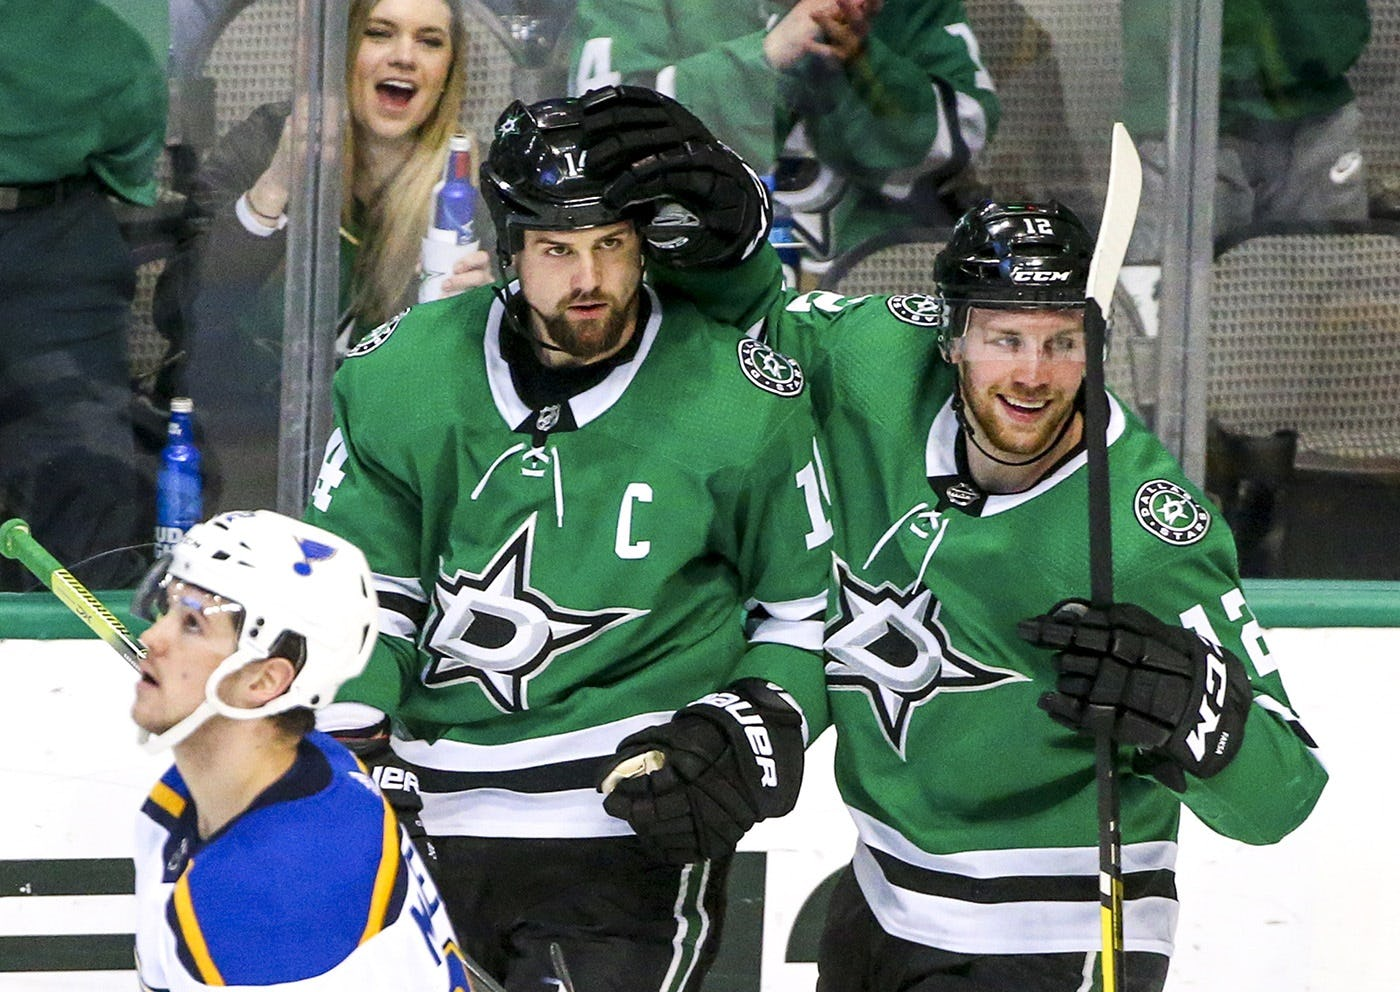 Jamie Benn returns to form as Stars snap Blues' 11-game win streak